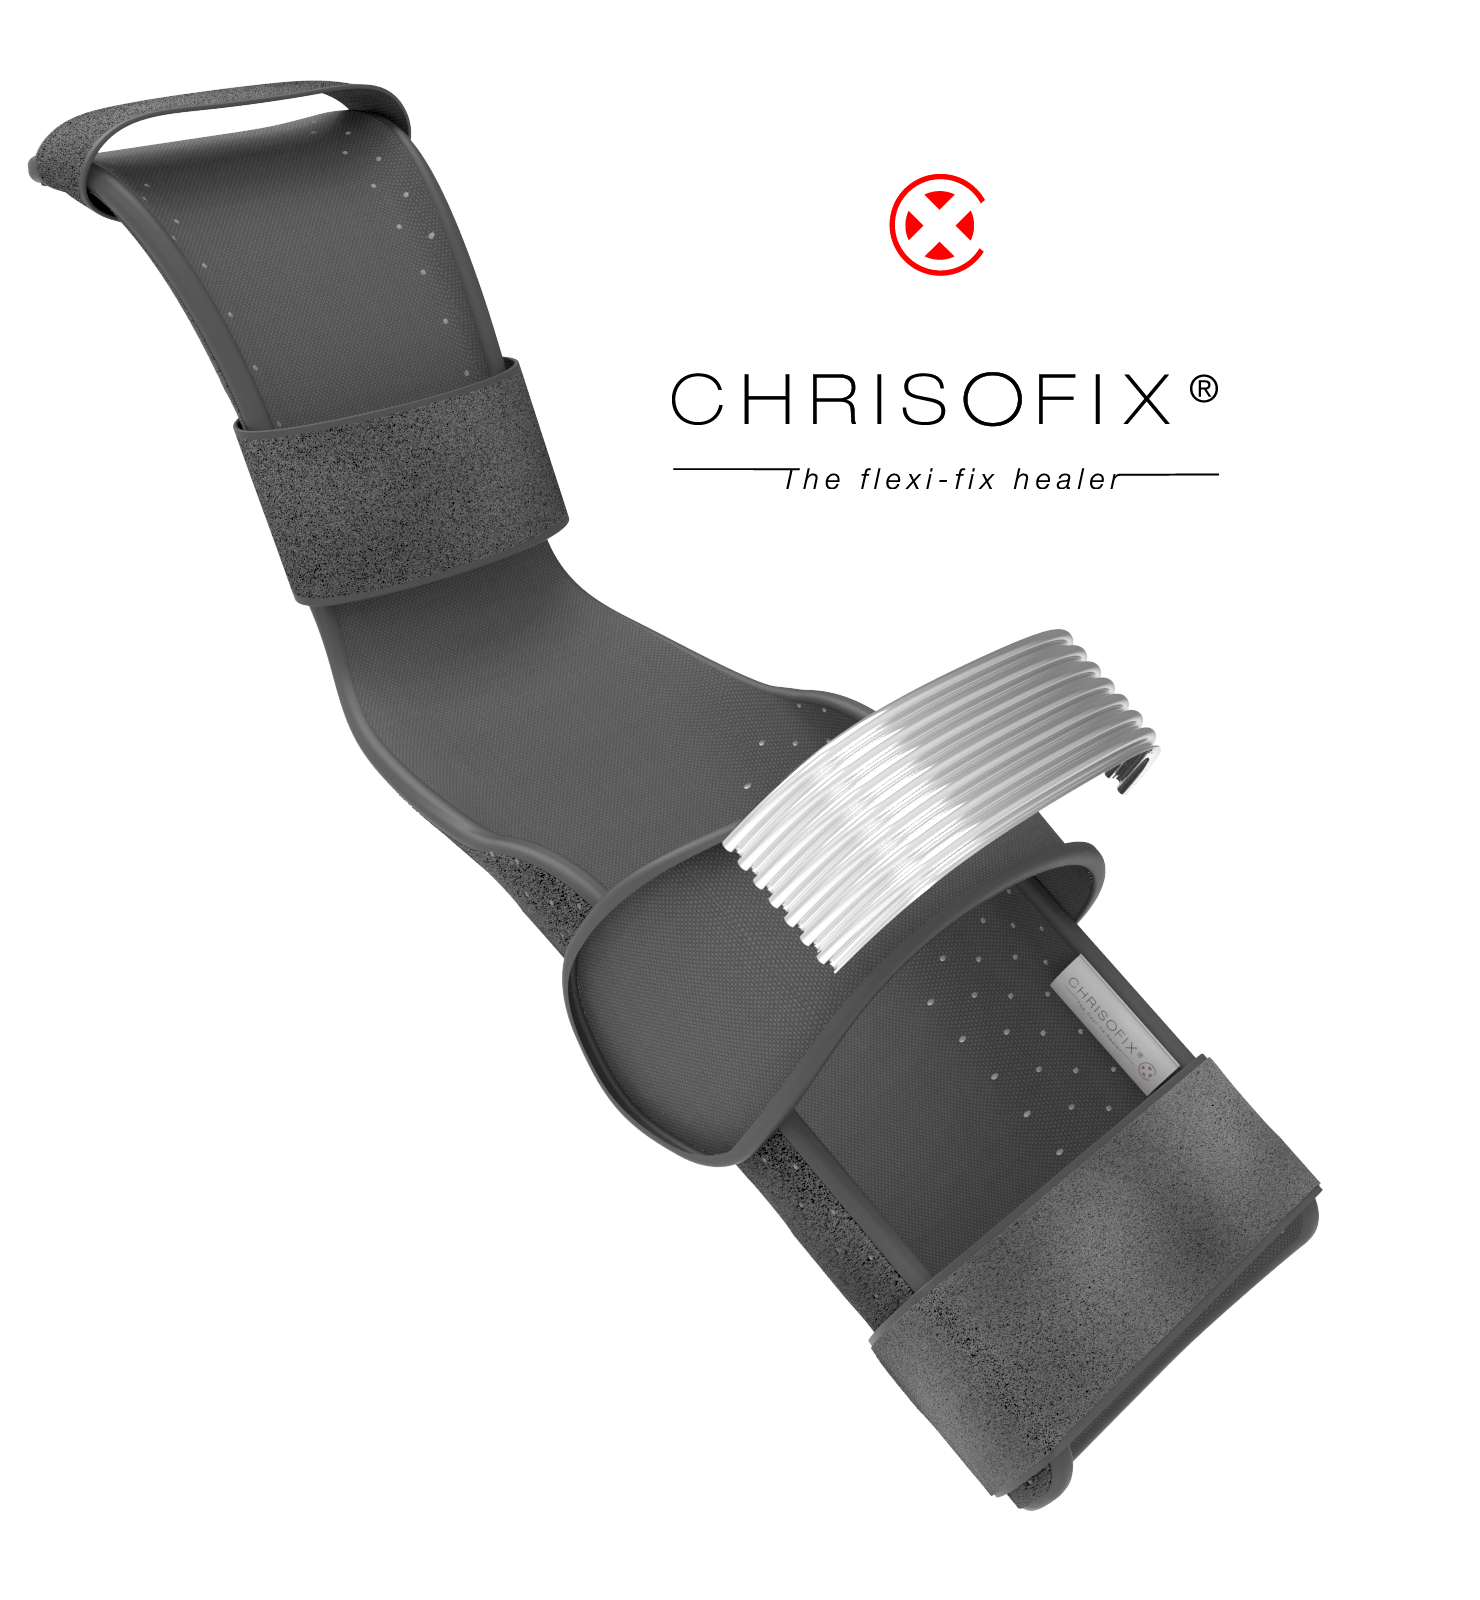 Chrisofix - World-class Orthoses Developed and Patented in Switzerland